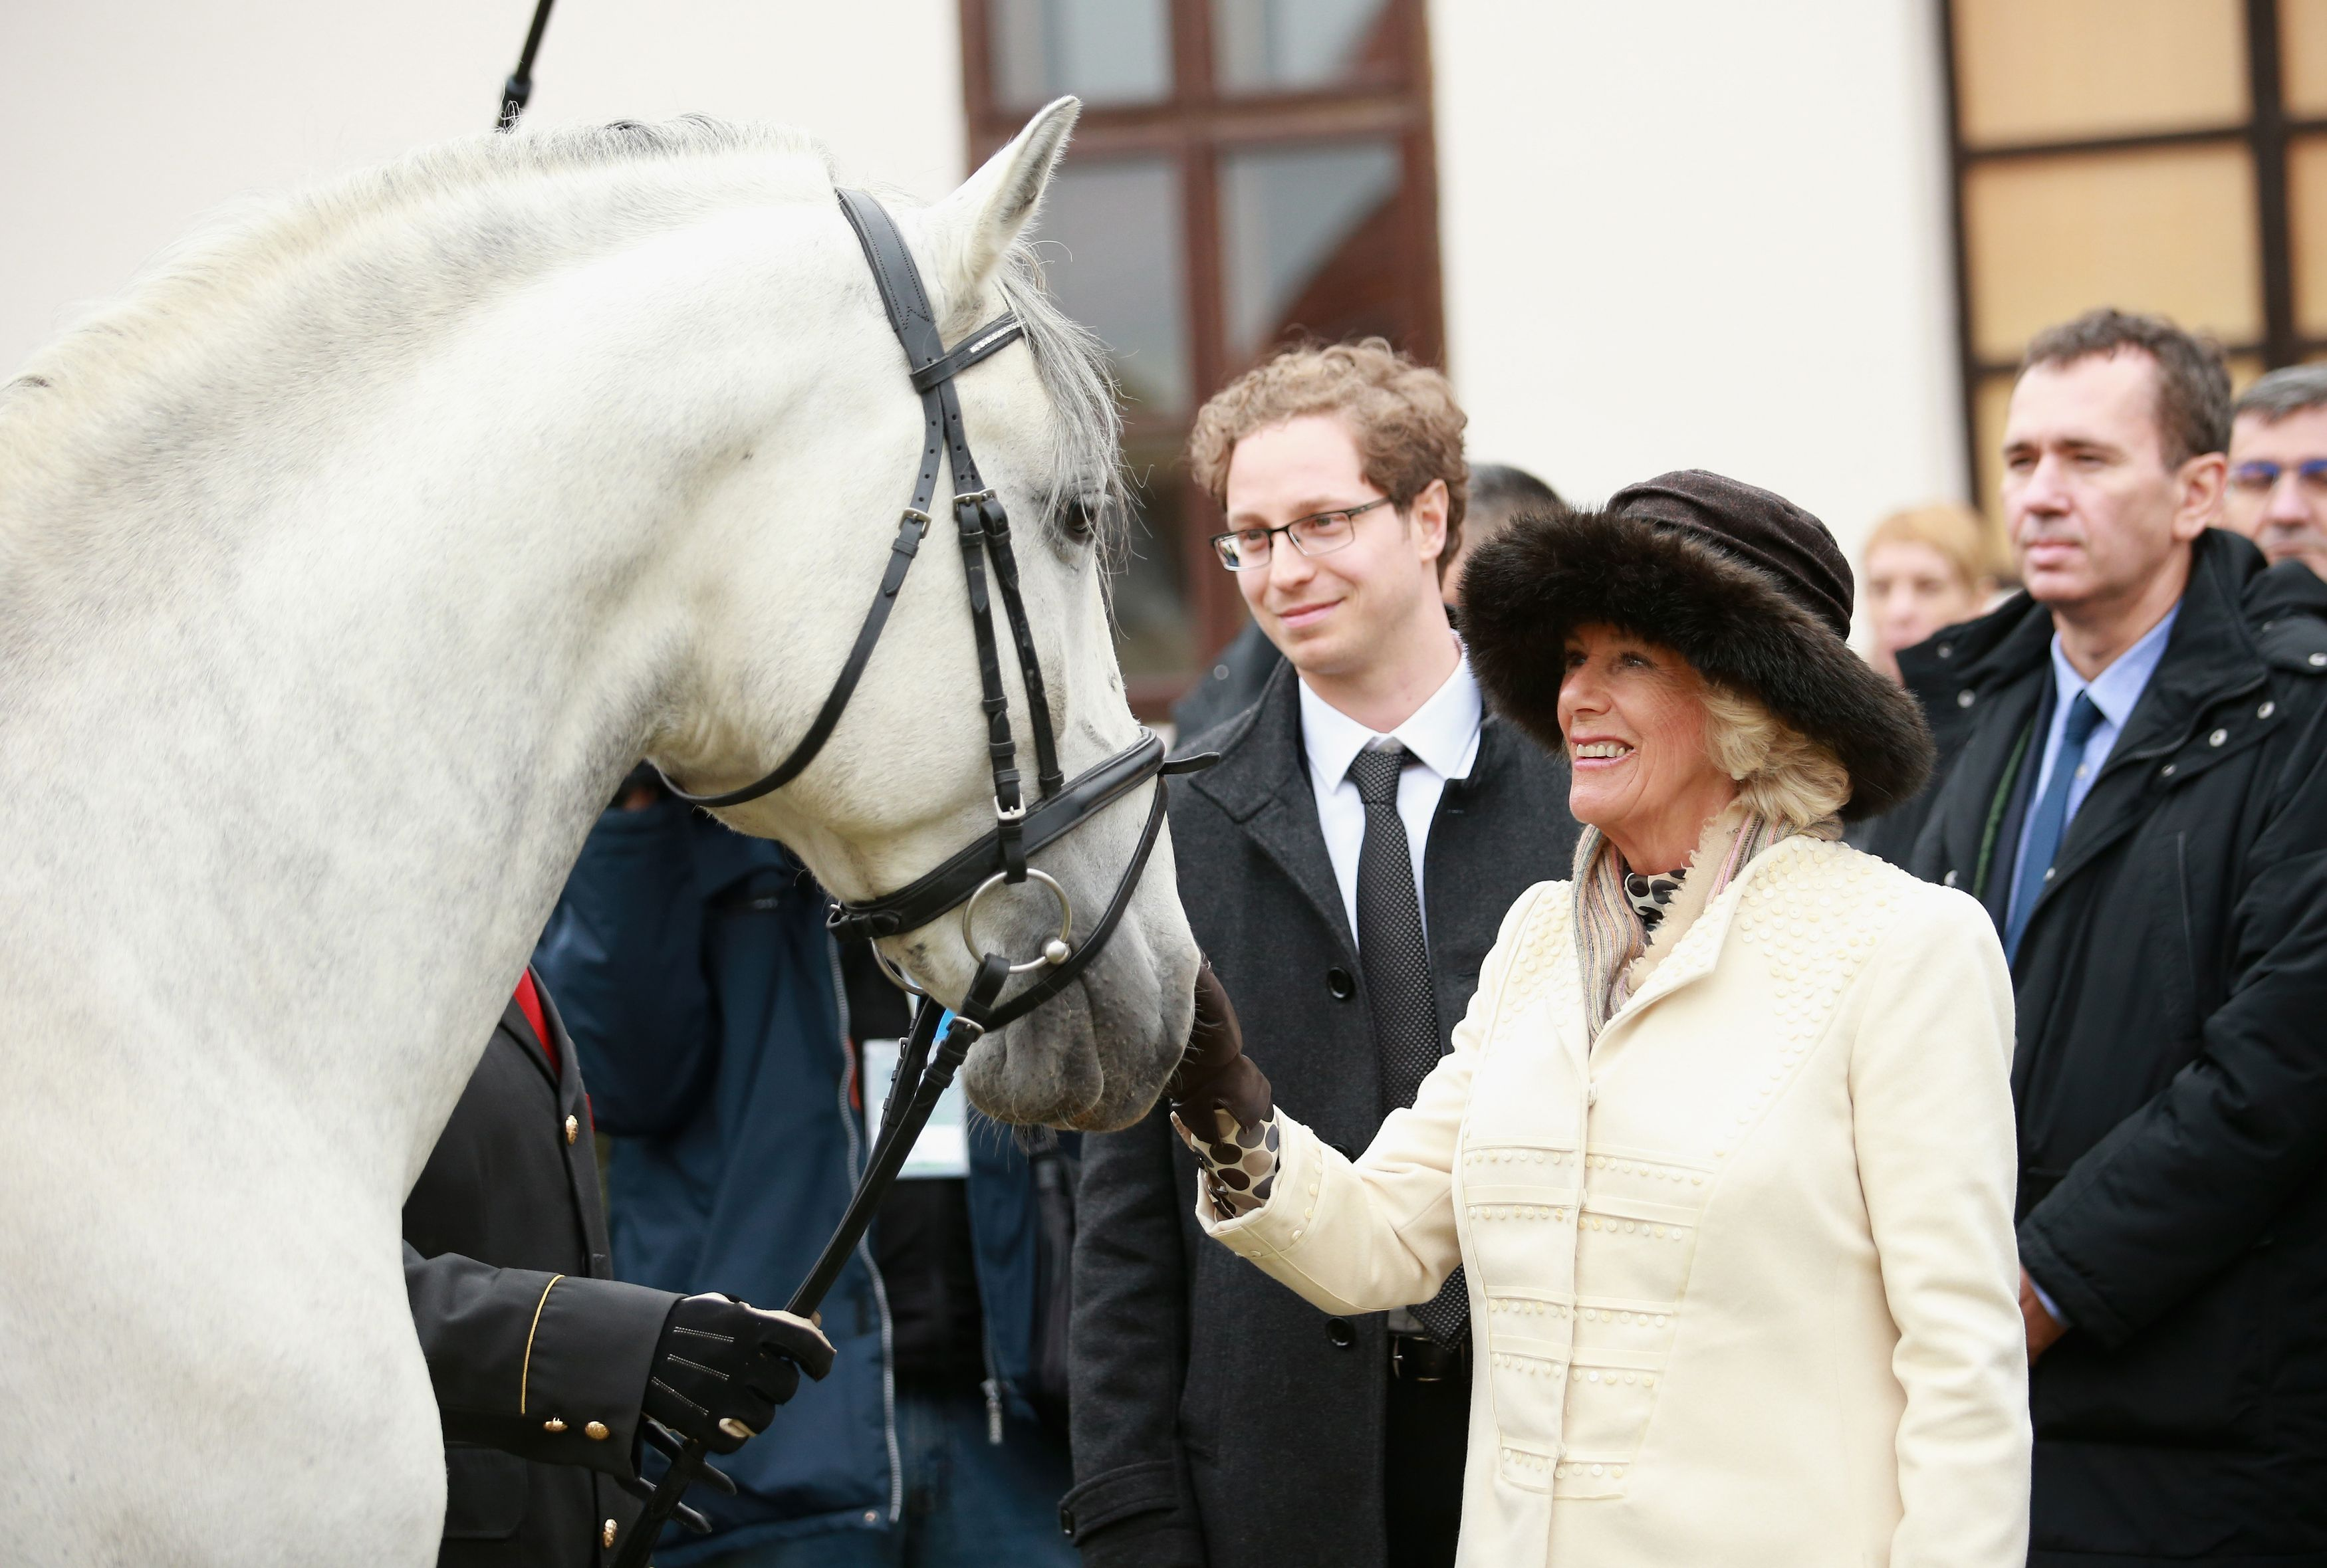 The Duchess of Cornwall visits Dakovo State Stud Farm in Croatia